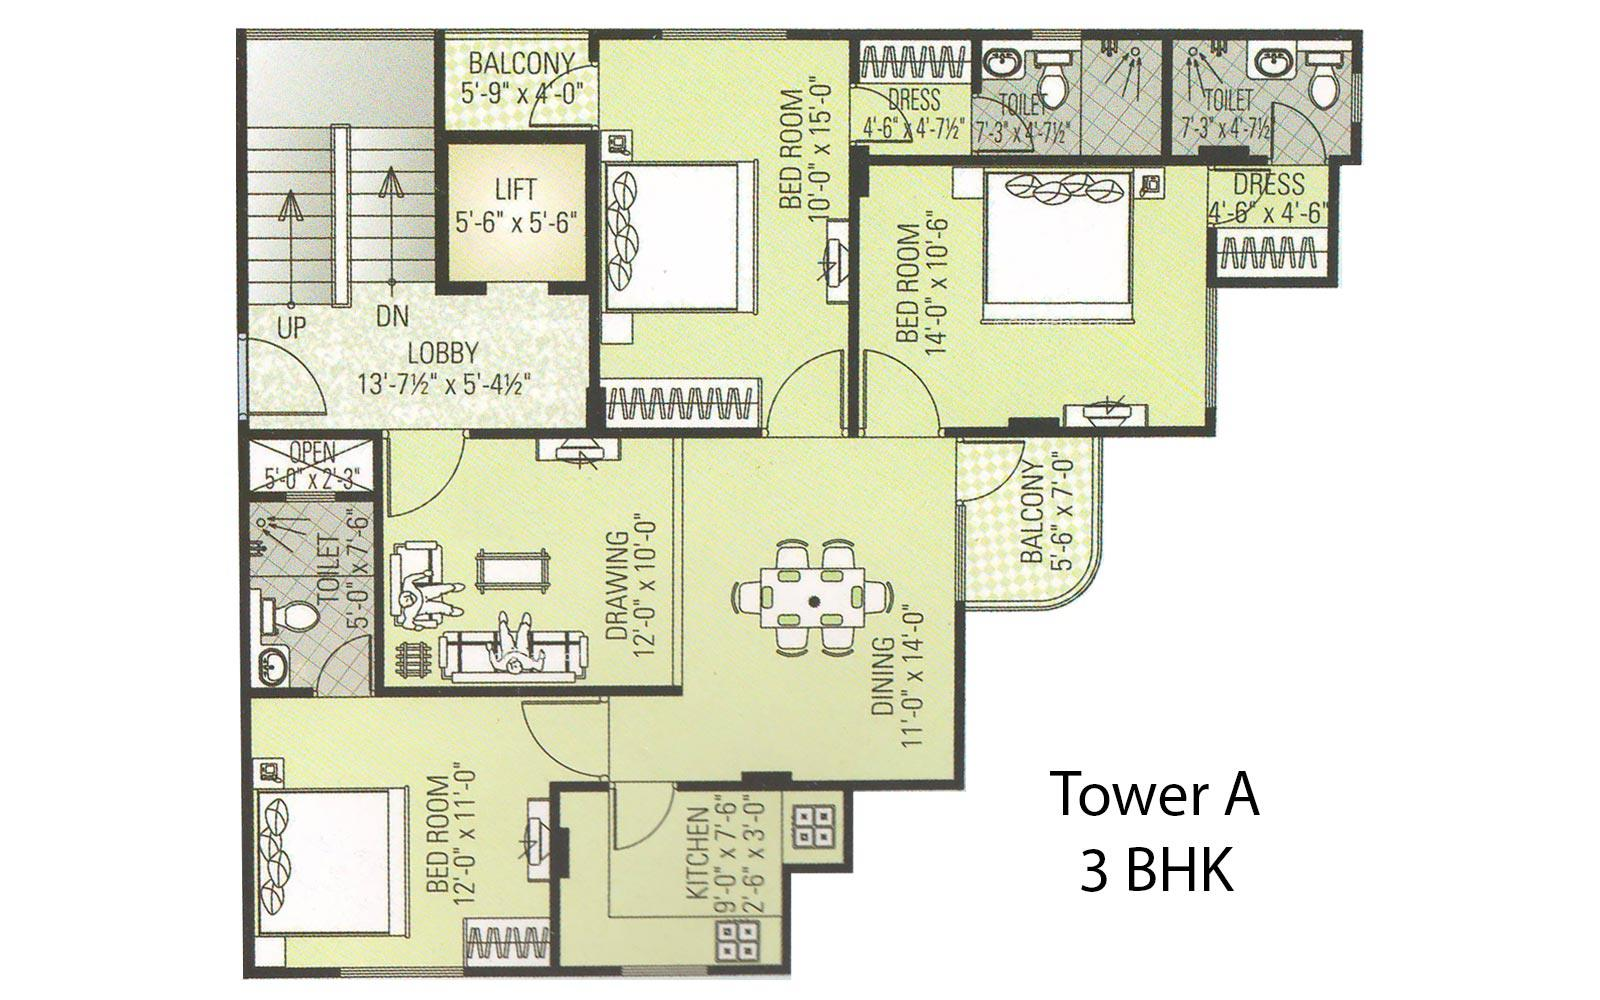 Amour Tower 3 BHK